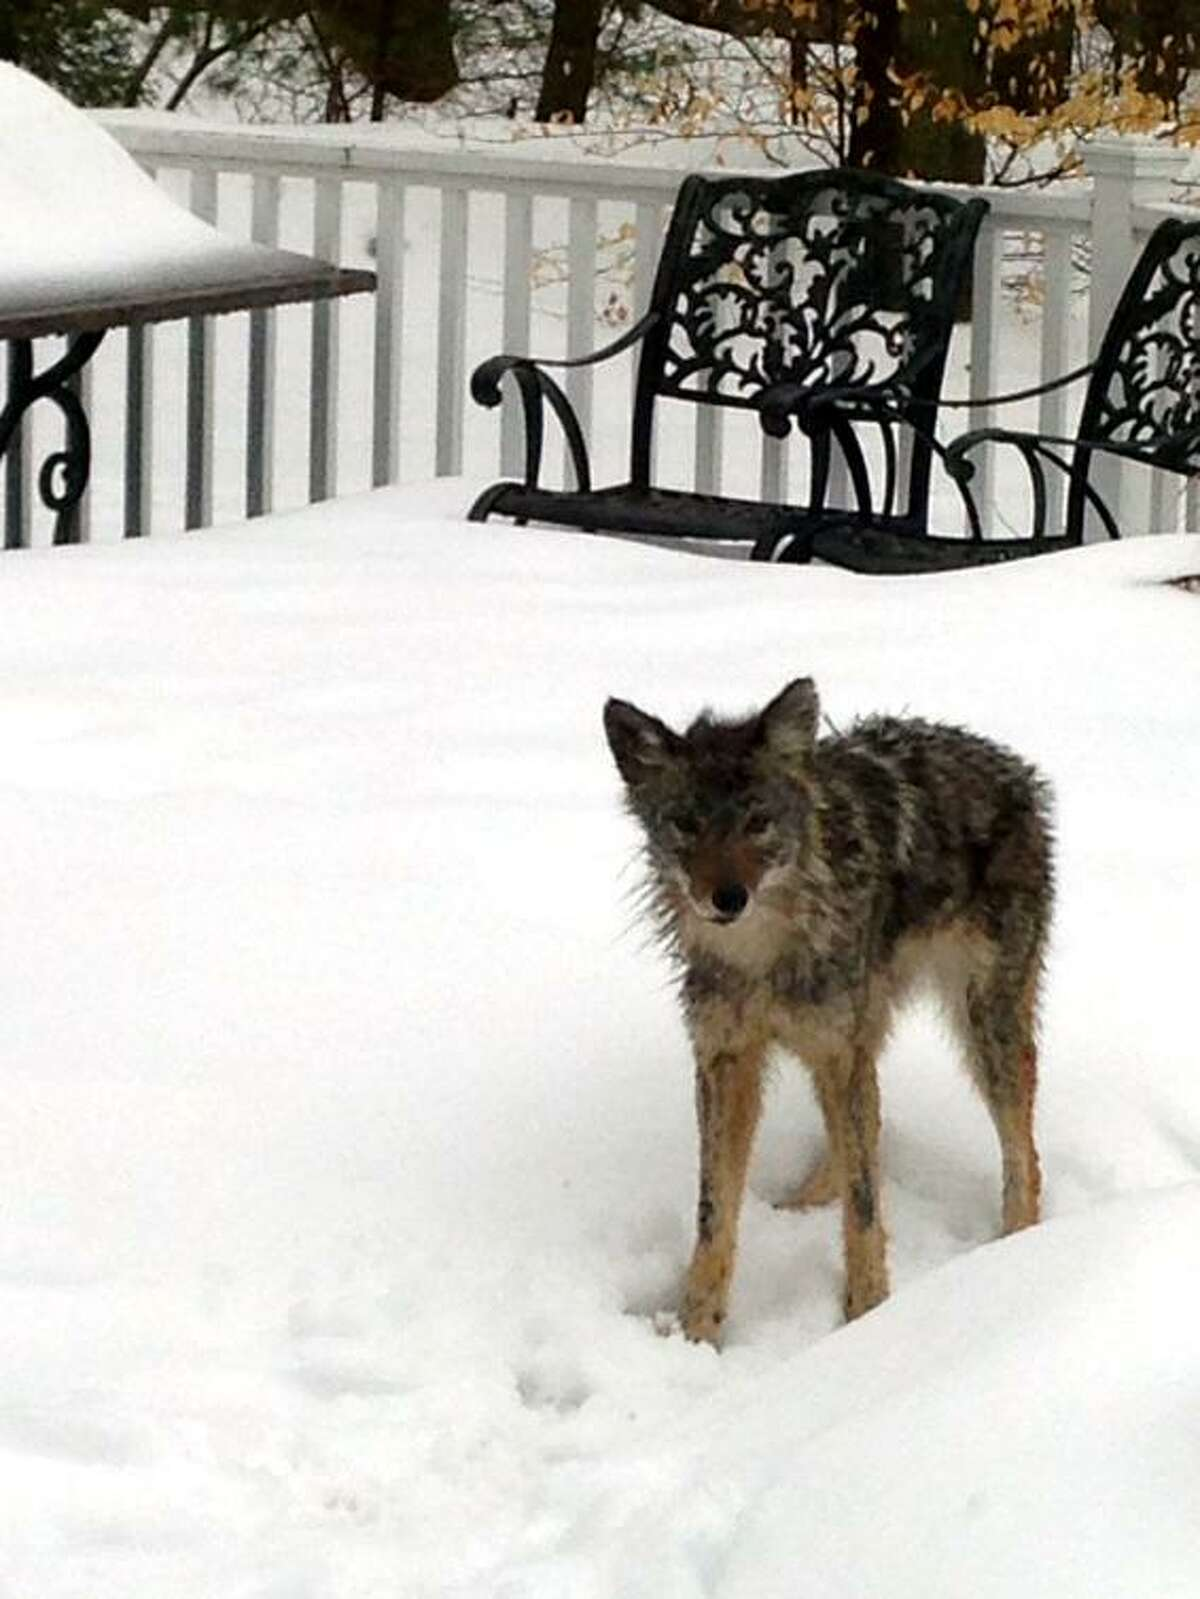 A resident of Dogwood Court in Stamford, Conn. snapped photos of her dog being chased by a coyote just before it ran into the house, and of the coyote on the other side of a sliding glass door immediately after. Stamford police provided the photo to the news media Monday, March 9, 2015.